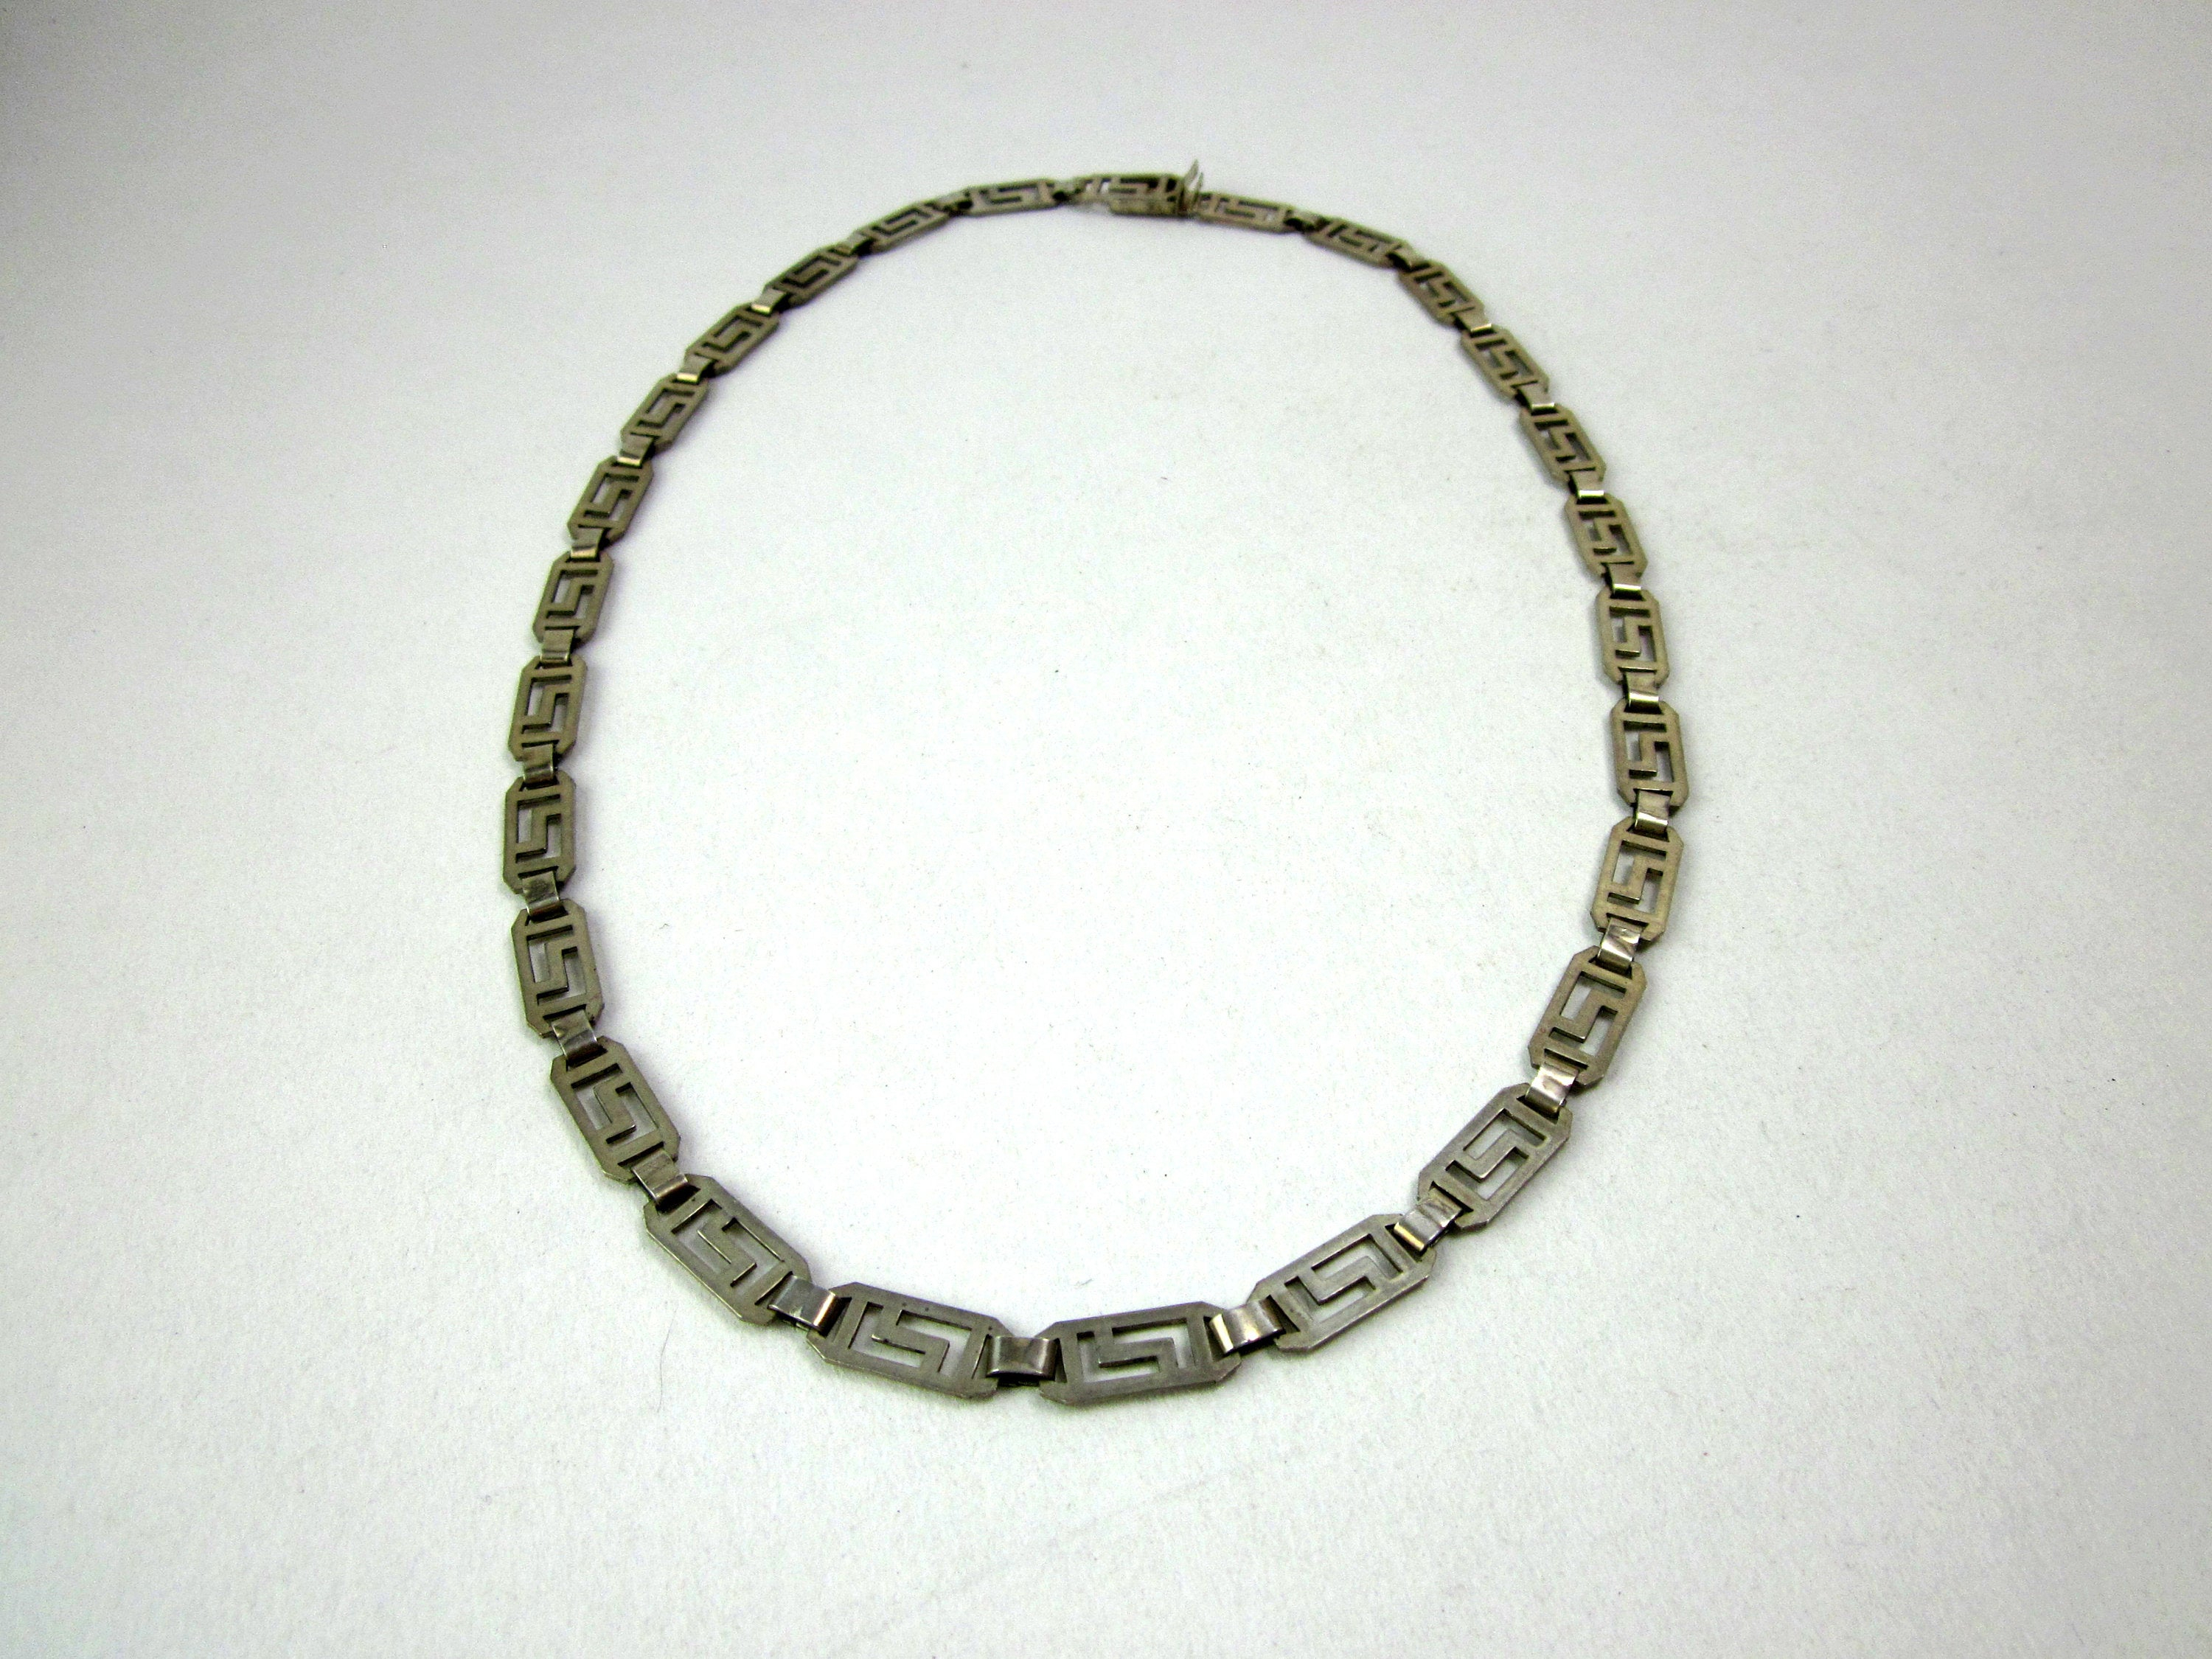 925 Silver Cline Chain, Collier, Necklace, Vintage Jewelry Necklace, Gift With Regard To Most Current Vintage Circle Collier Necklaces (View 8 of 25)